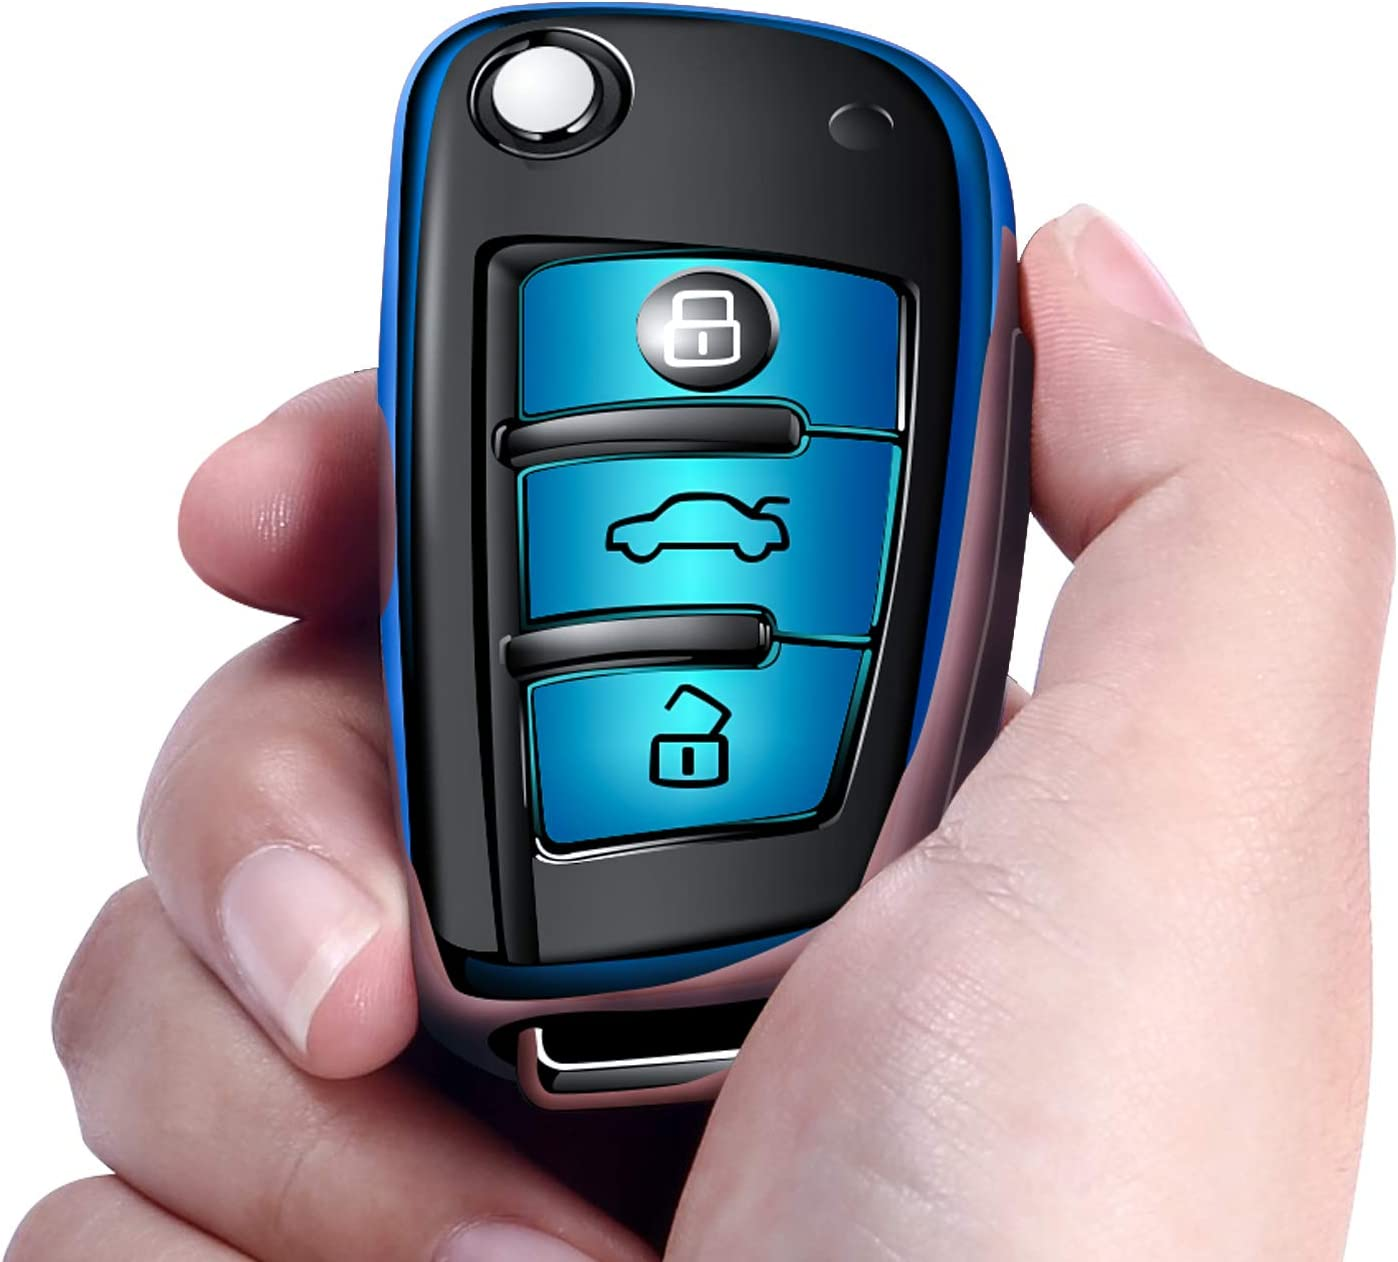 Blue Autophone for Audi Key Fob Cover Case Premium Soft TPU 360 Degree Entire Protection Key Shell Key Case Cover Compatible with Audi A1 A3 A6 Q2 Q3 Q7 TT TTS R8 S3 S6 RS3 Smart Key